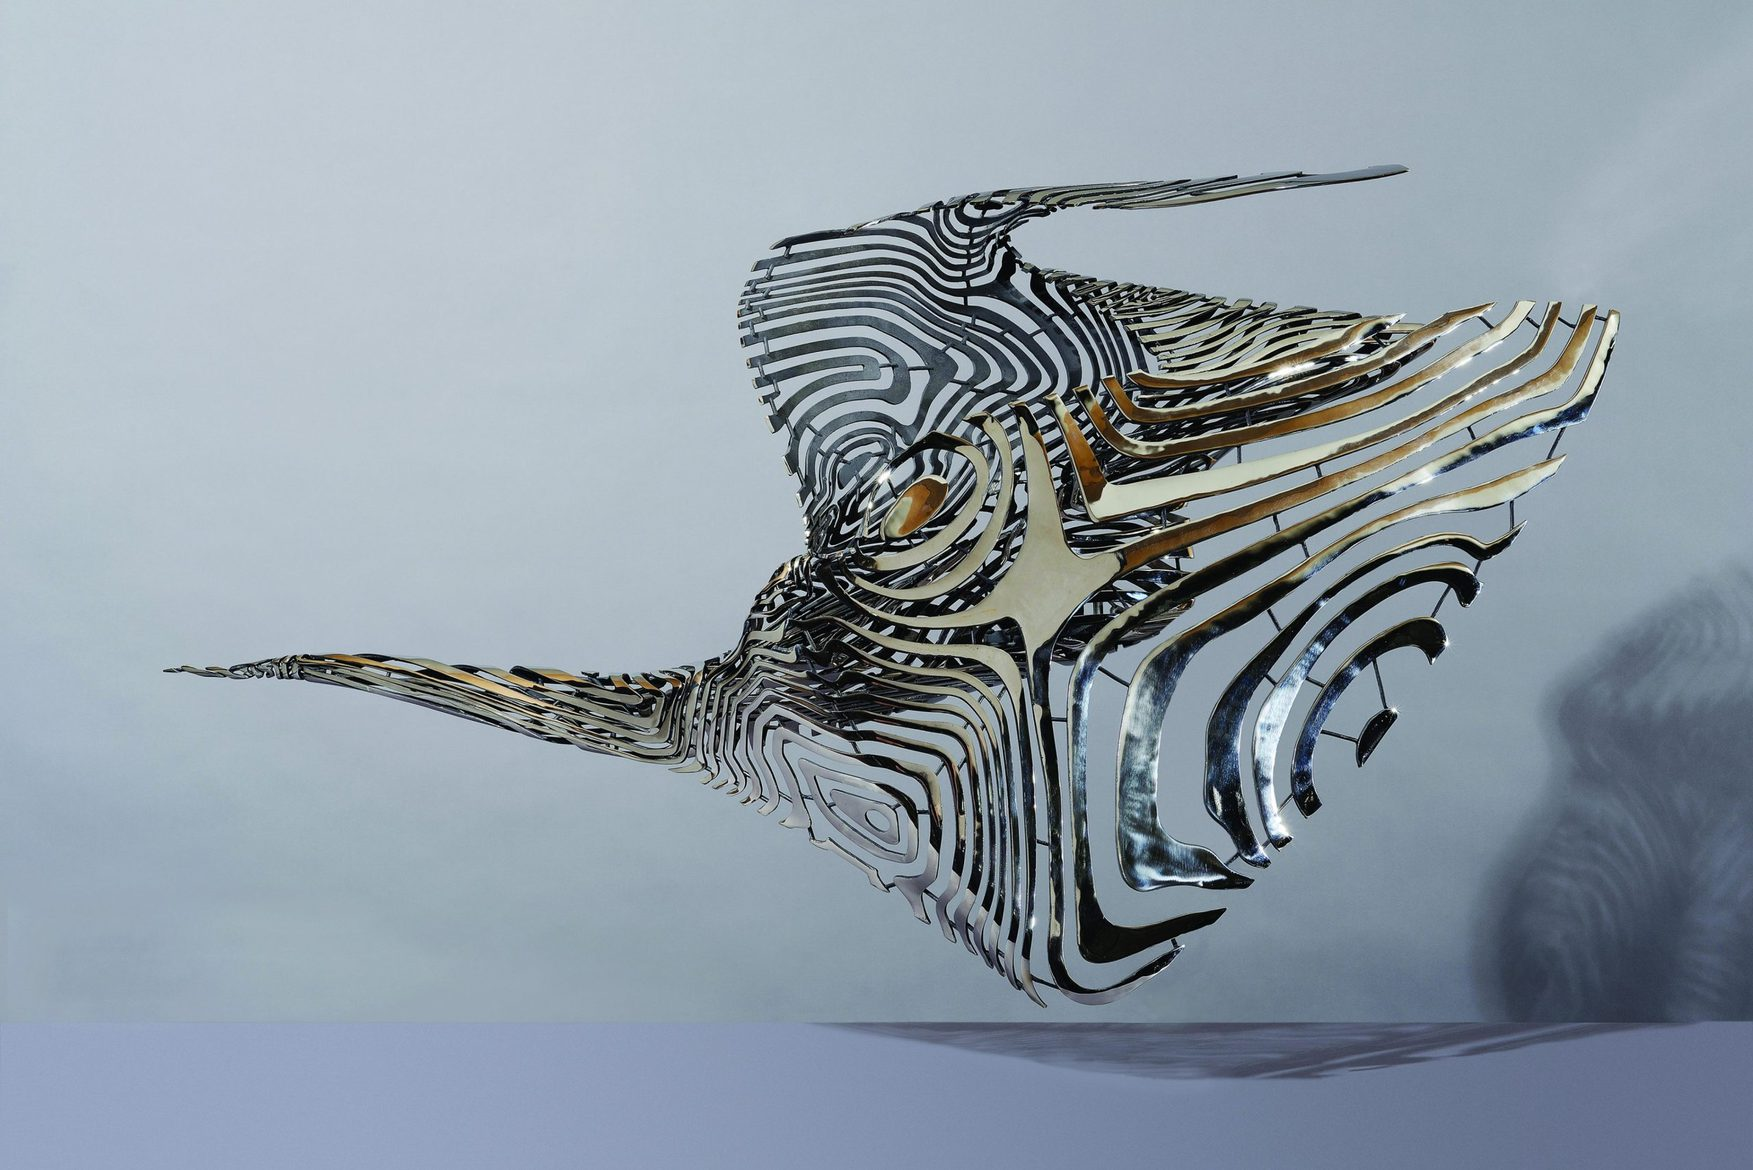 'Come to the Edge 2', 2012, stainless steel, 96 x 161 x 49 cm, edition 1 of 5 + 1AP